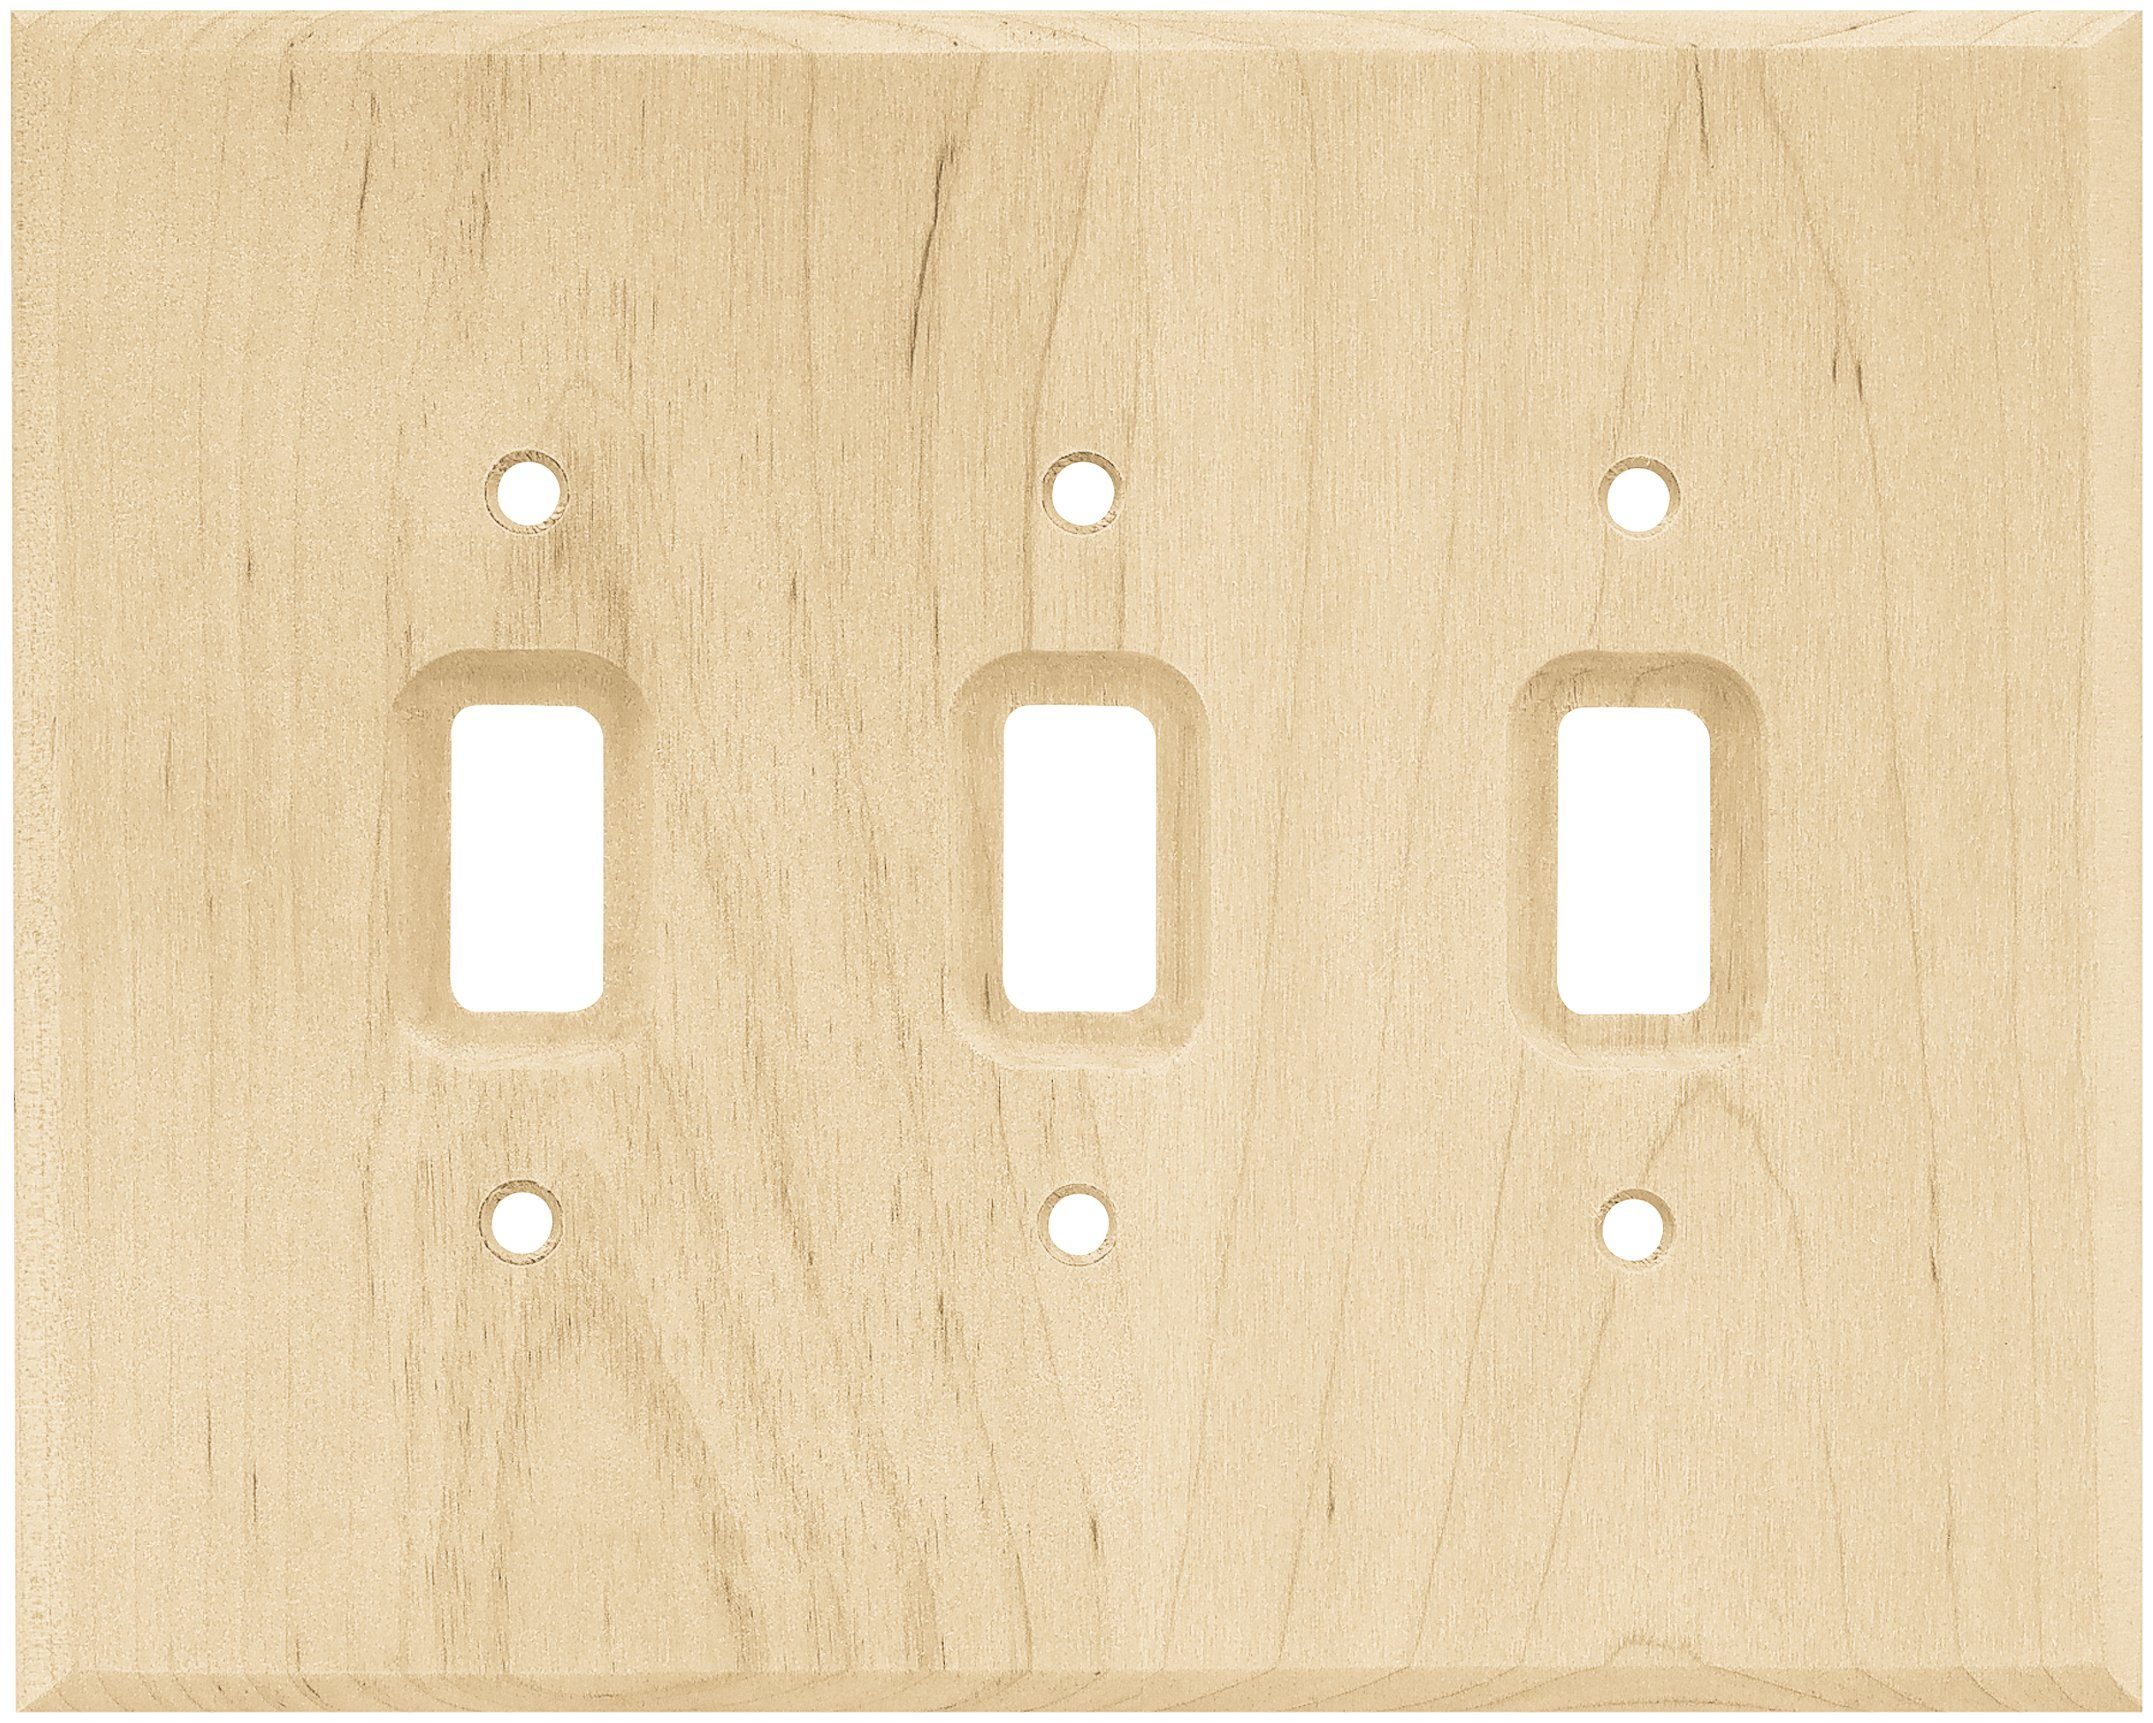 Brainerd 126796 Wood Square Triple Toggle Switch Wall Plate / Switch Plate / Cover, Unfinished